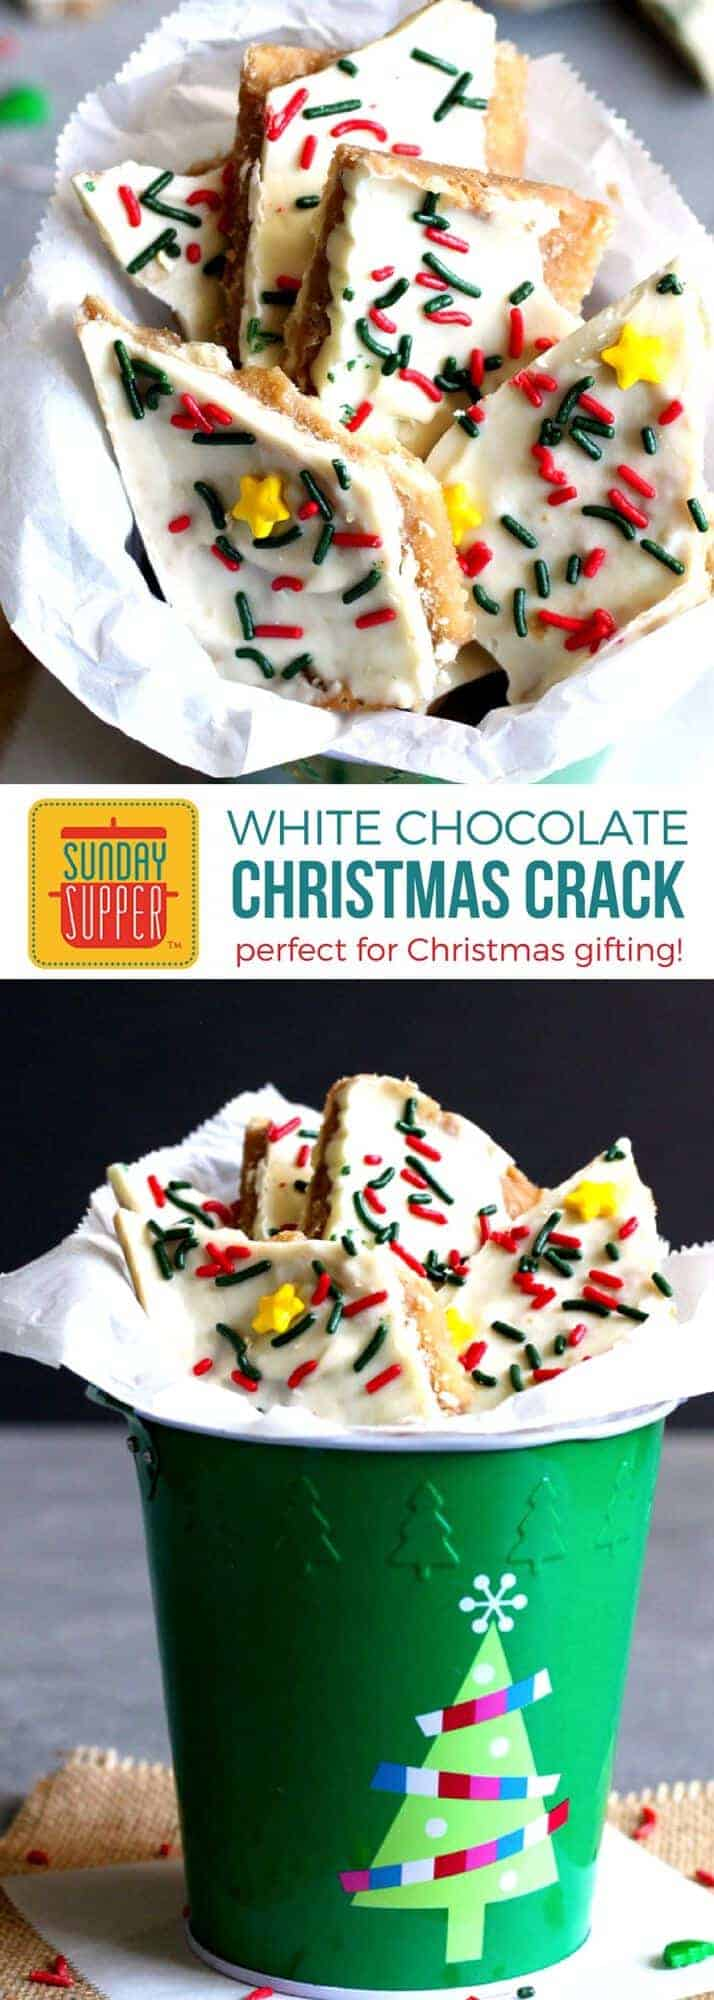 White Chocolate Christmas Crack